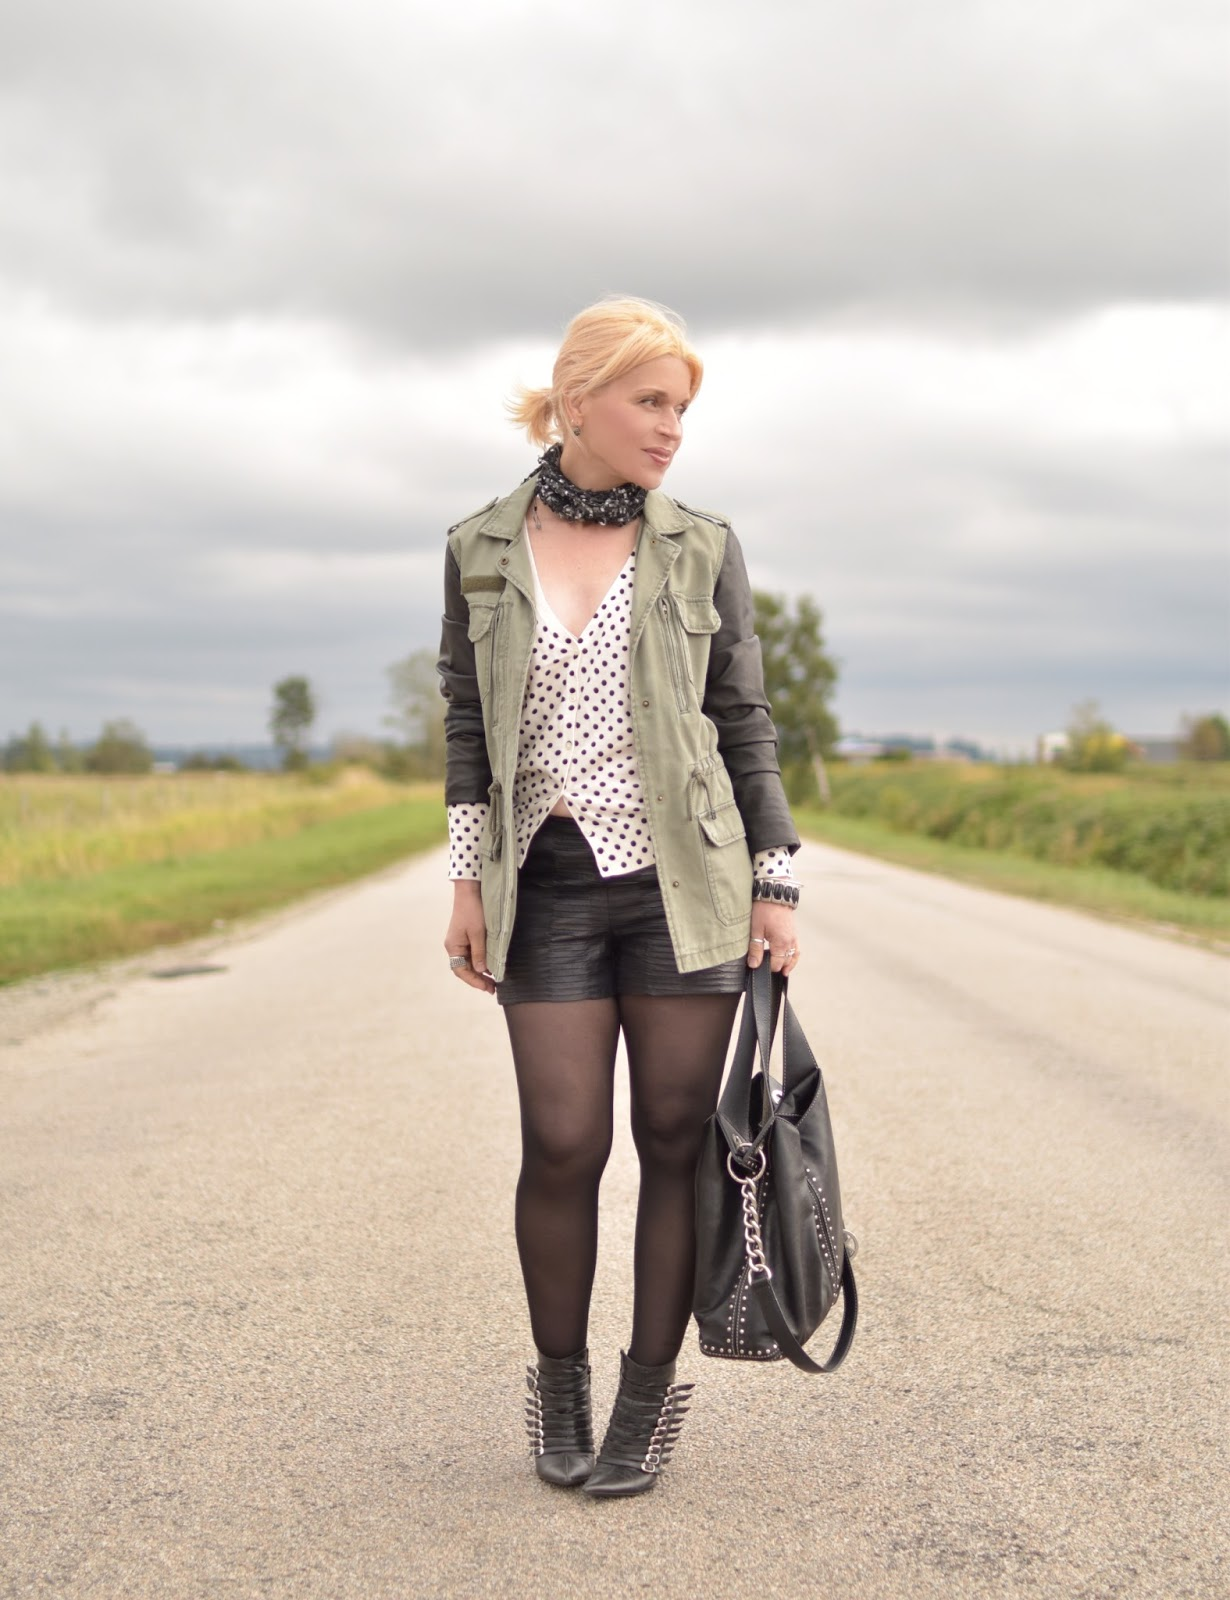 Monika Faulkner styles a polka-dot cardigan with an army jacket, faux-leather shorts, and buckle-embellished booties